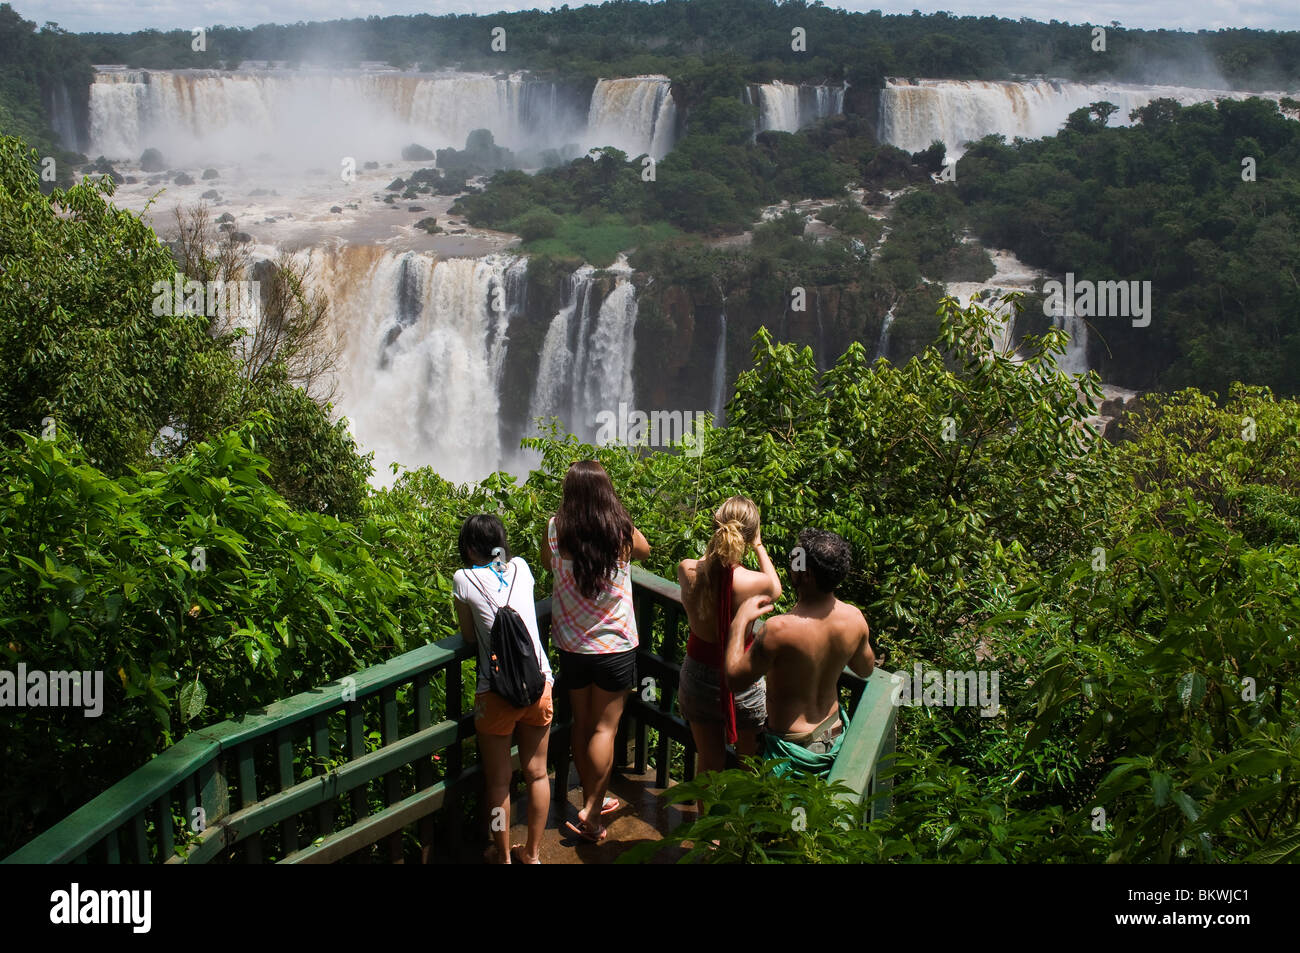 Tourists at Iguaçú Falls, one of the biggest falls in the world, Paraná state, Brazil - Stock Image